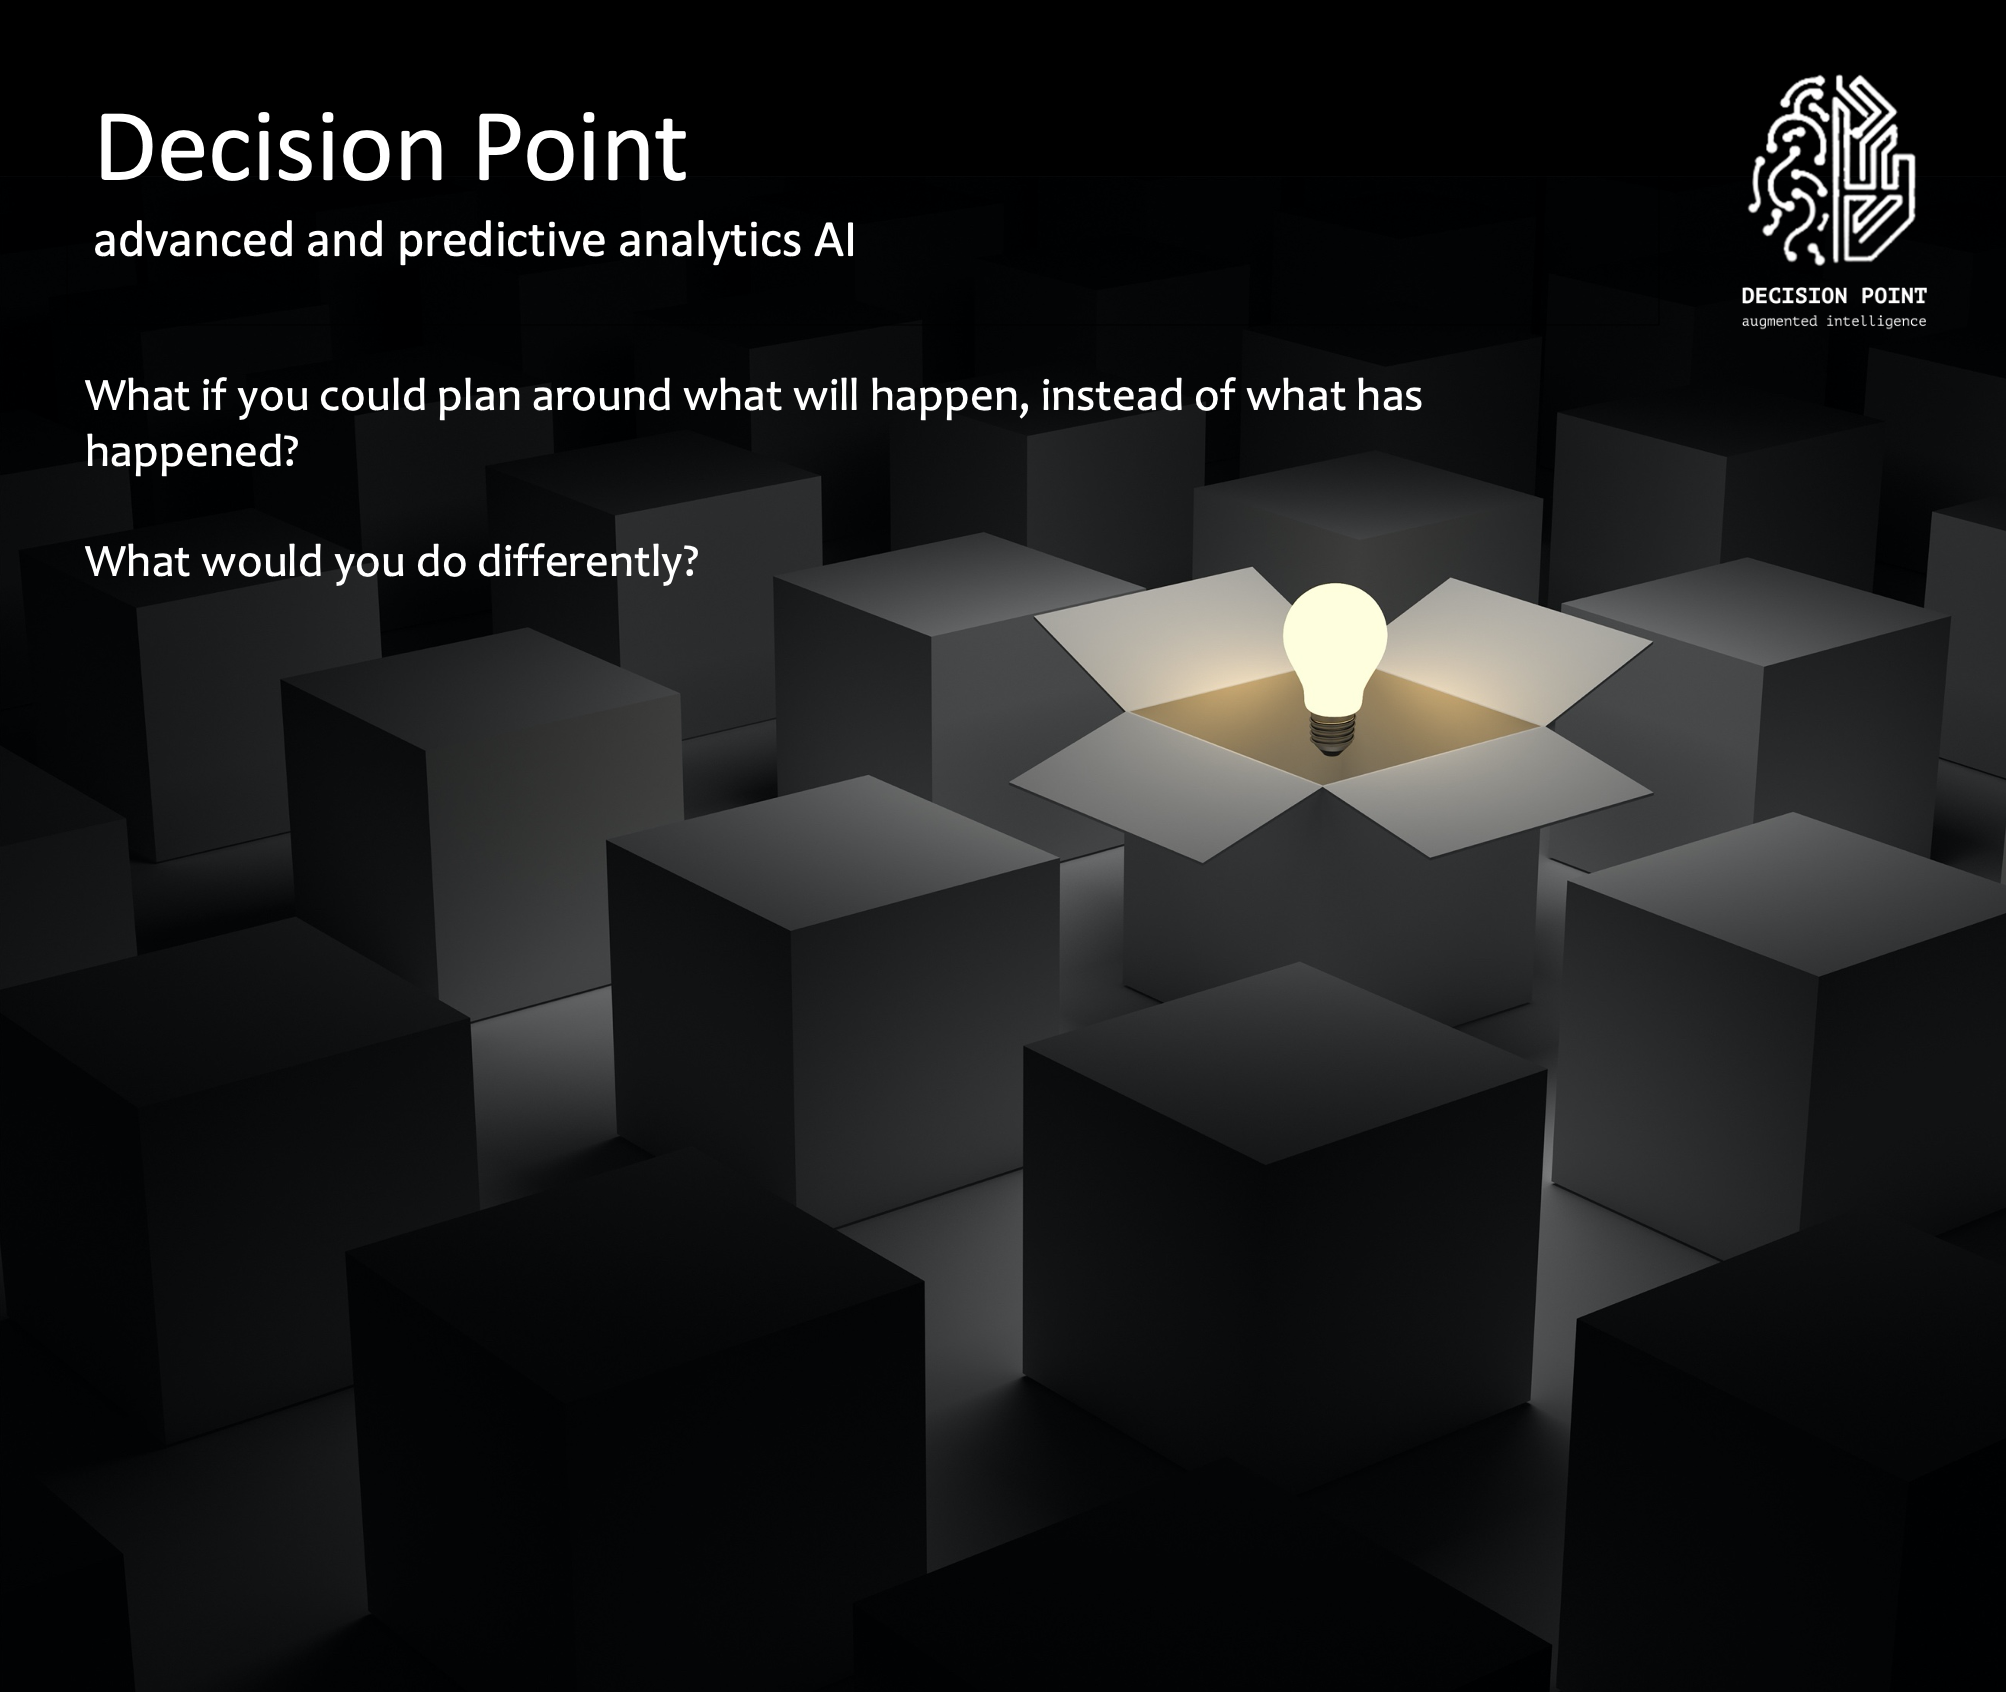 Decision Point advanced and predictive analytics AI